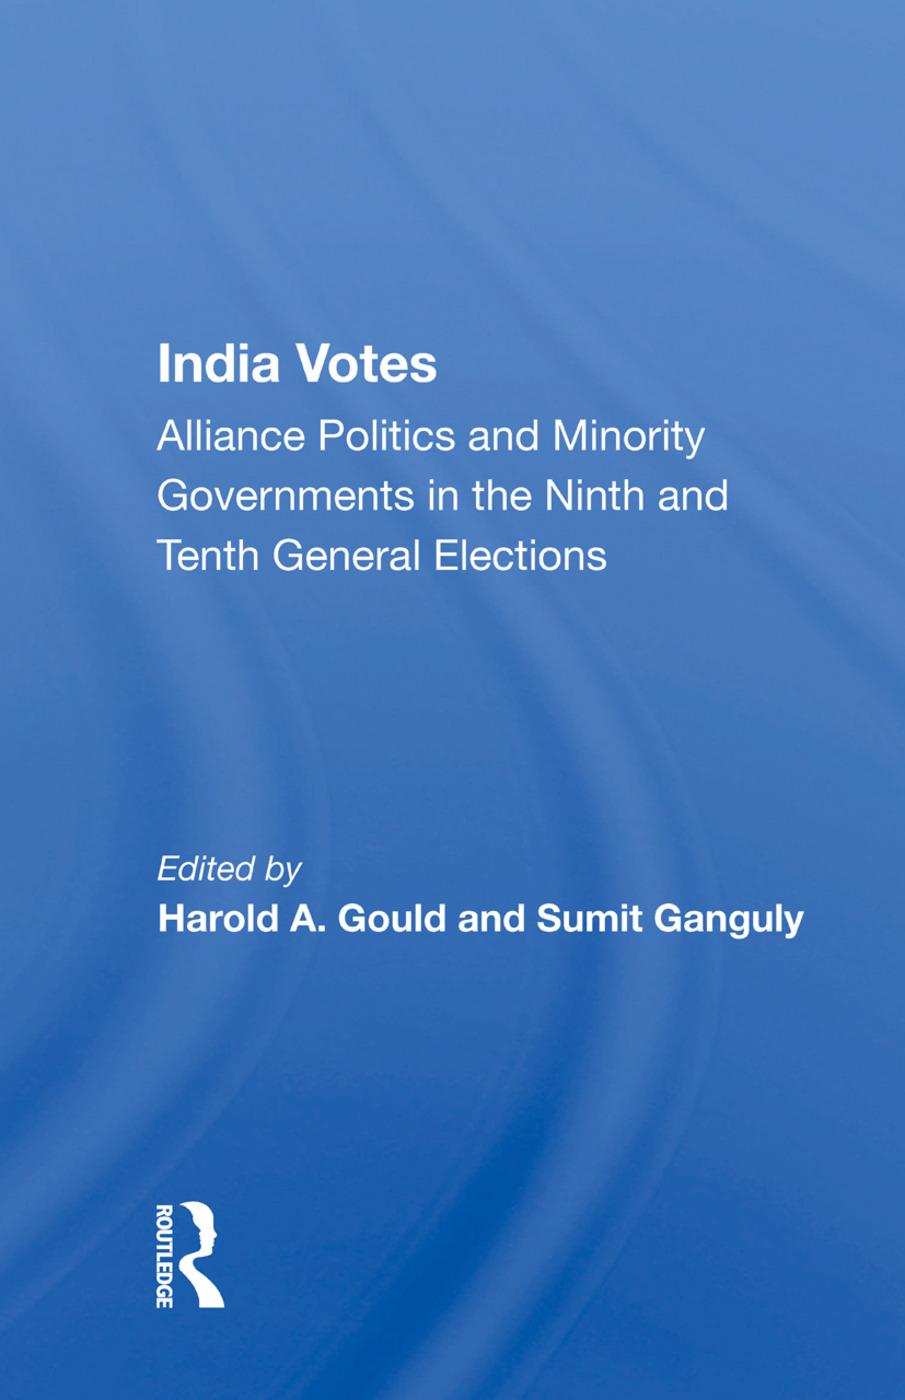 Violence, Agrarian Radicalism, and the Audibility of Dissent: Electoral Politics and the Indian People's Front                            1